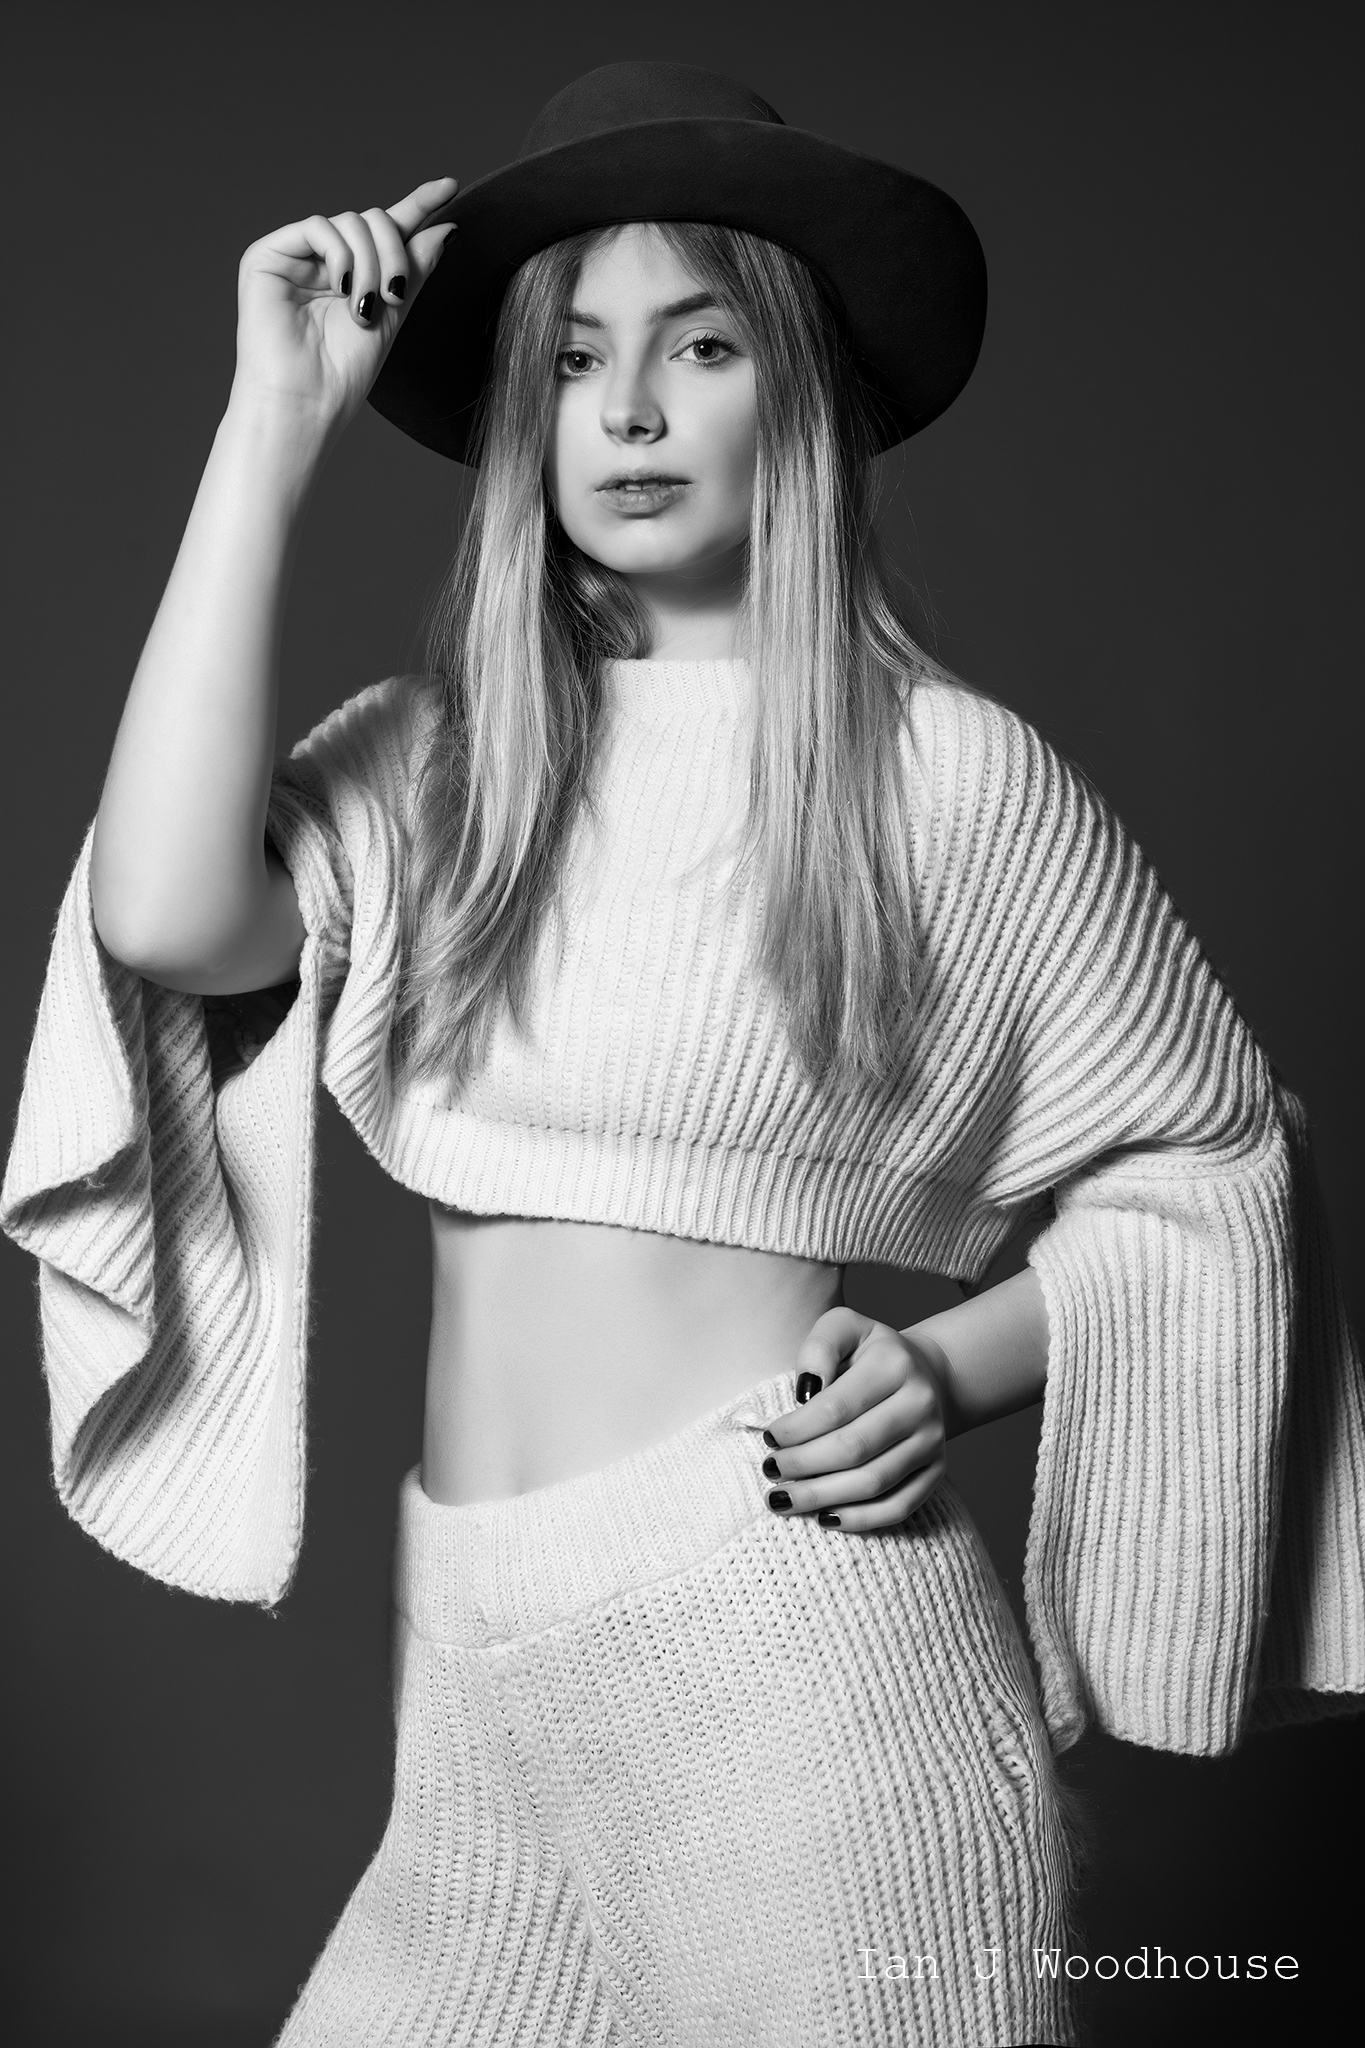 Blonde haired model wearing a hat and a white trouser and top set